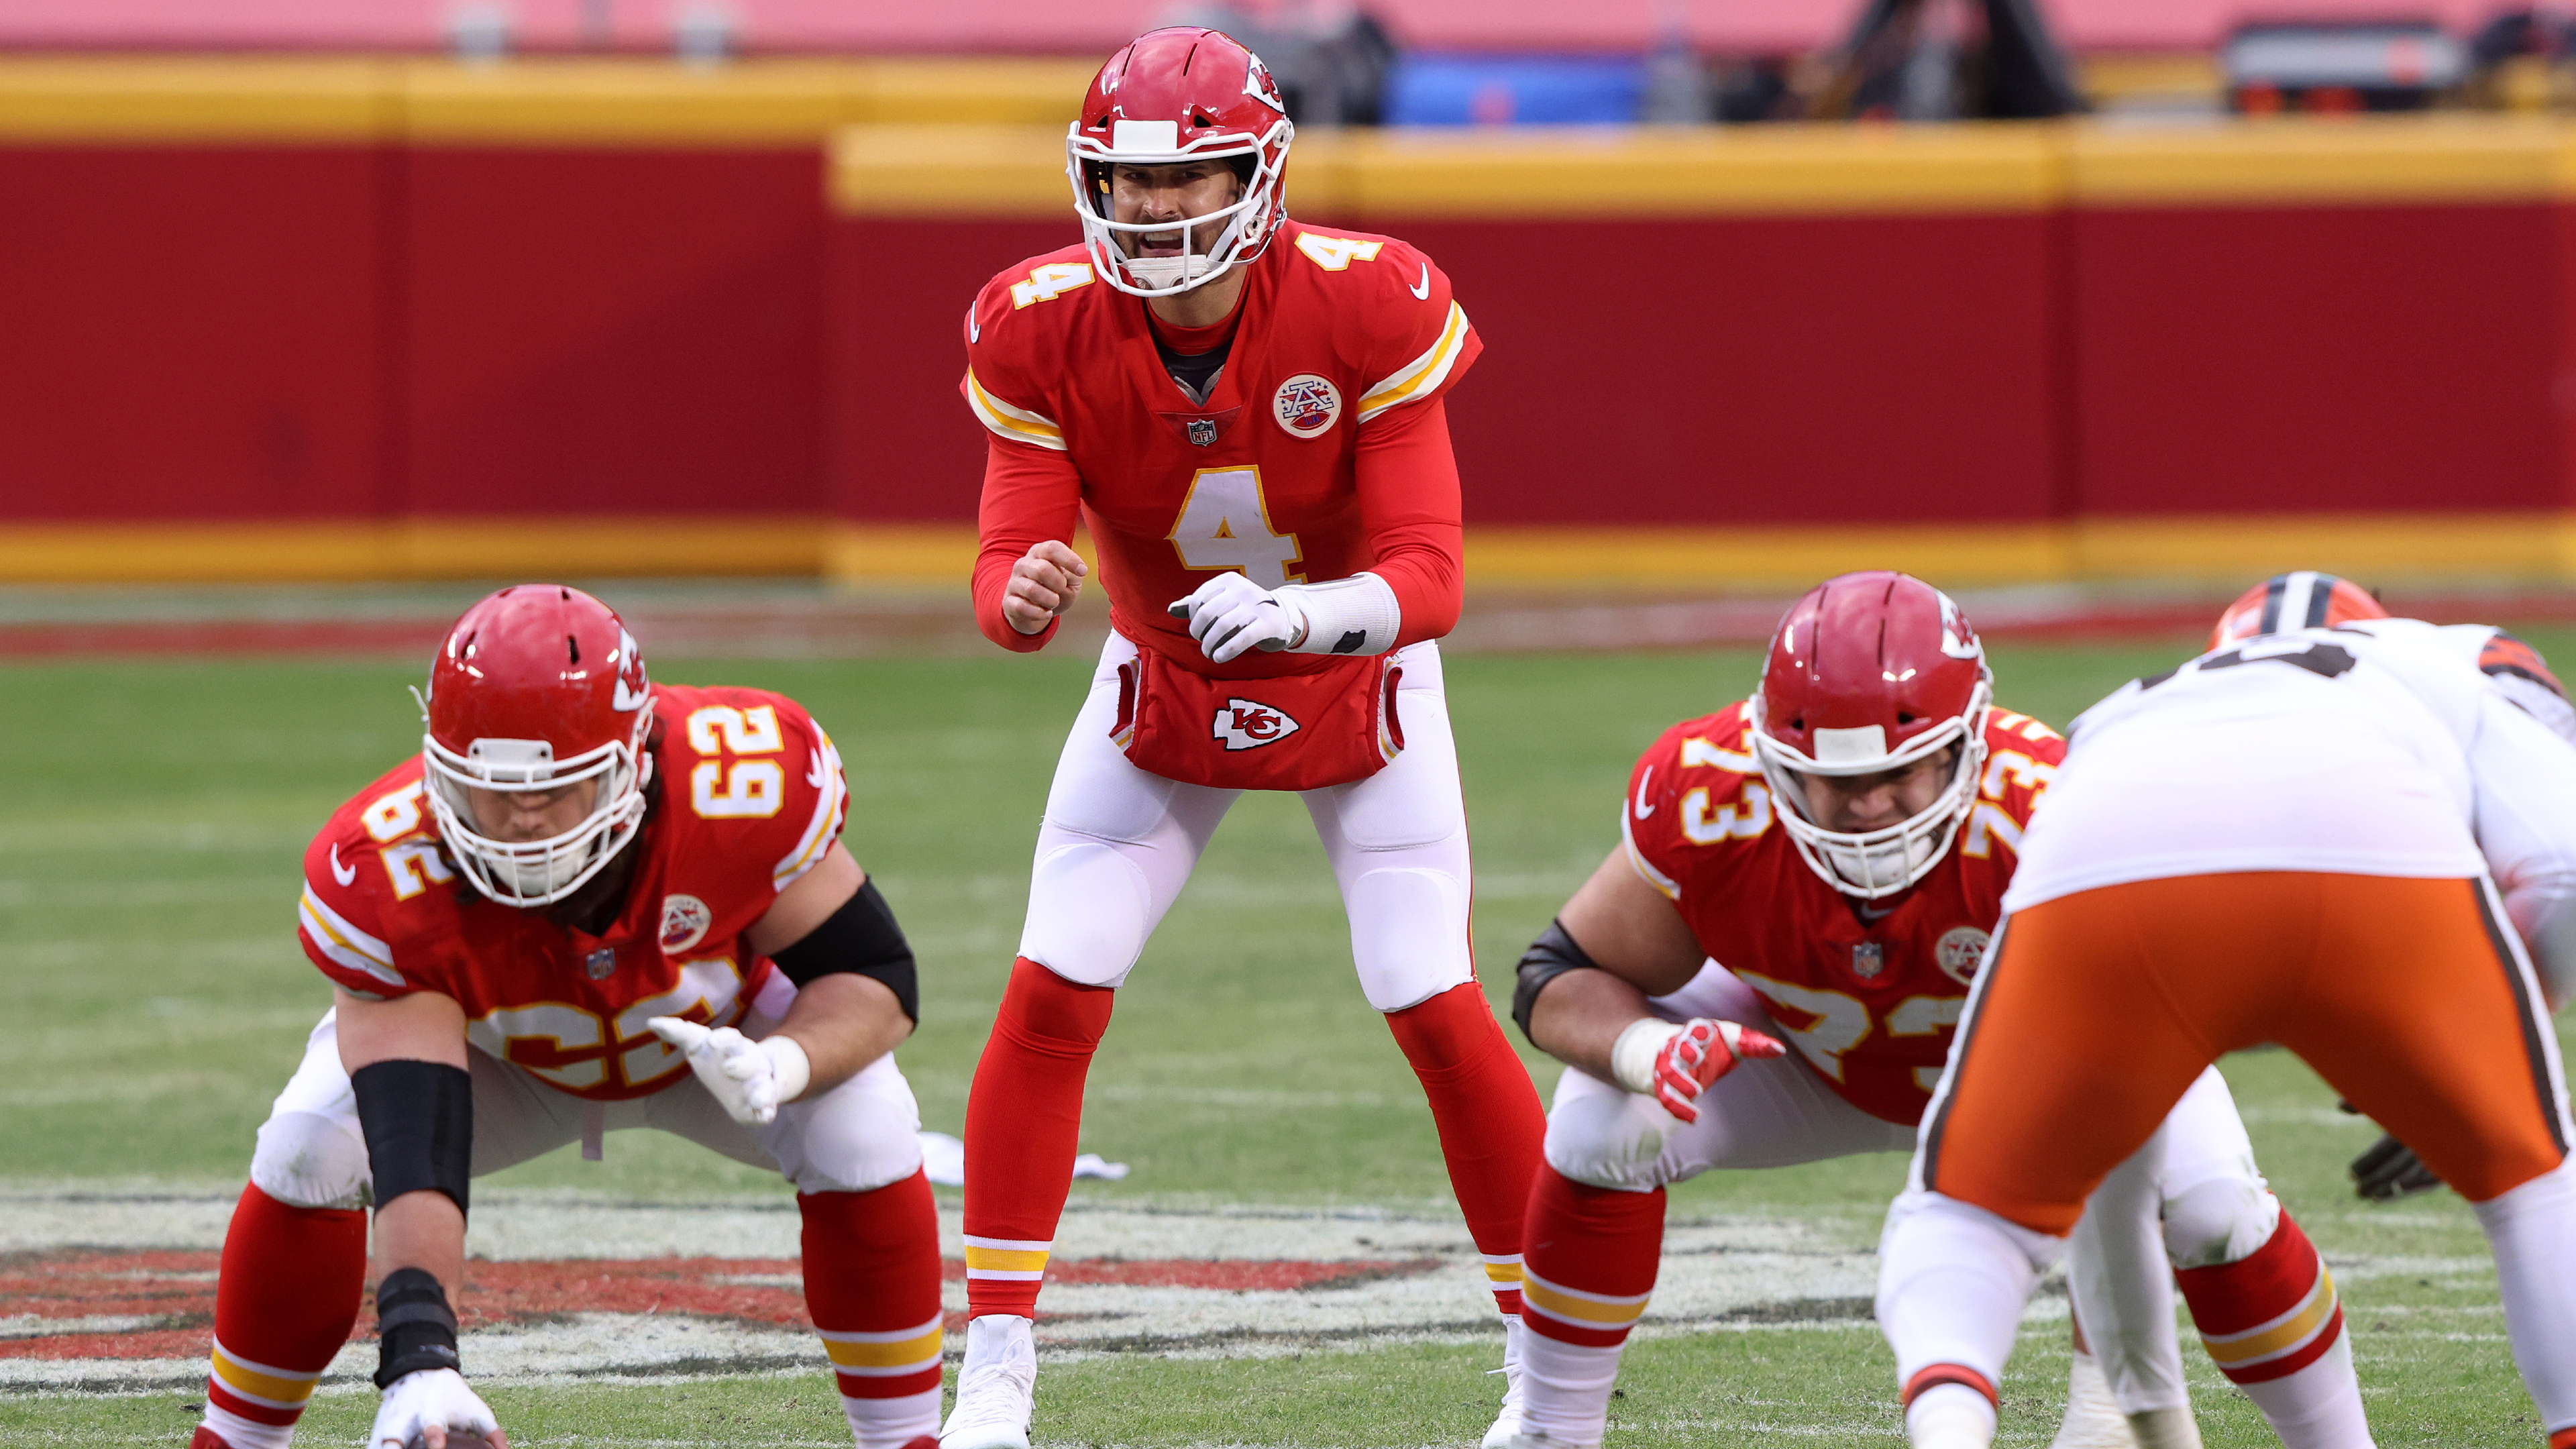 Chad Hennes late-game heroics vs Browns preserve Chiefs season cause HenneThingIsPossible to trend